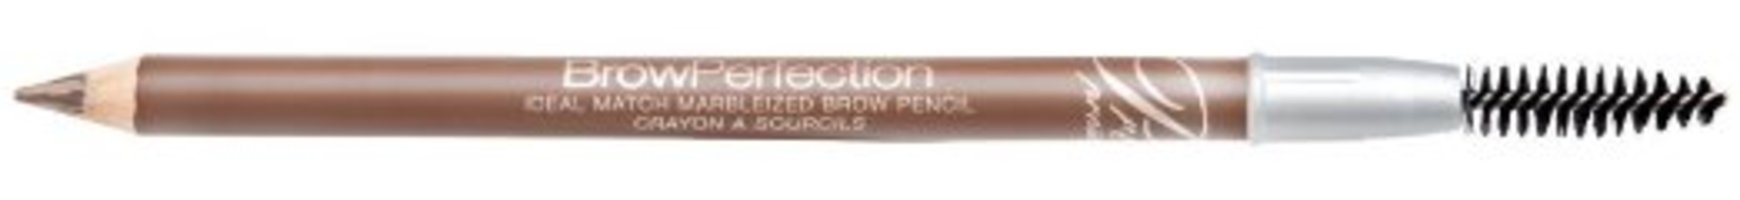 Prestige Brow Perfection Ideal Match Marbleized Brow Pencil